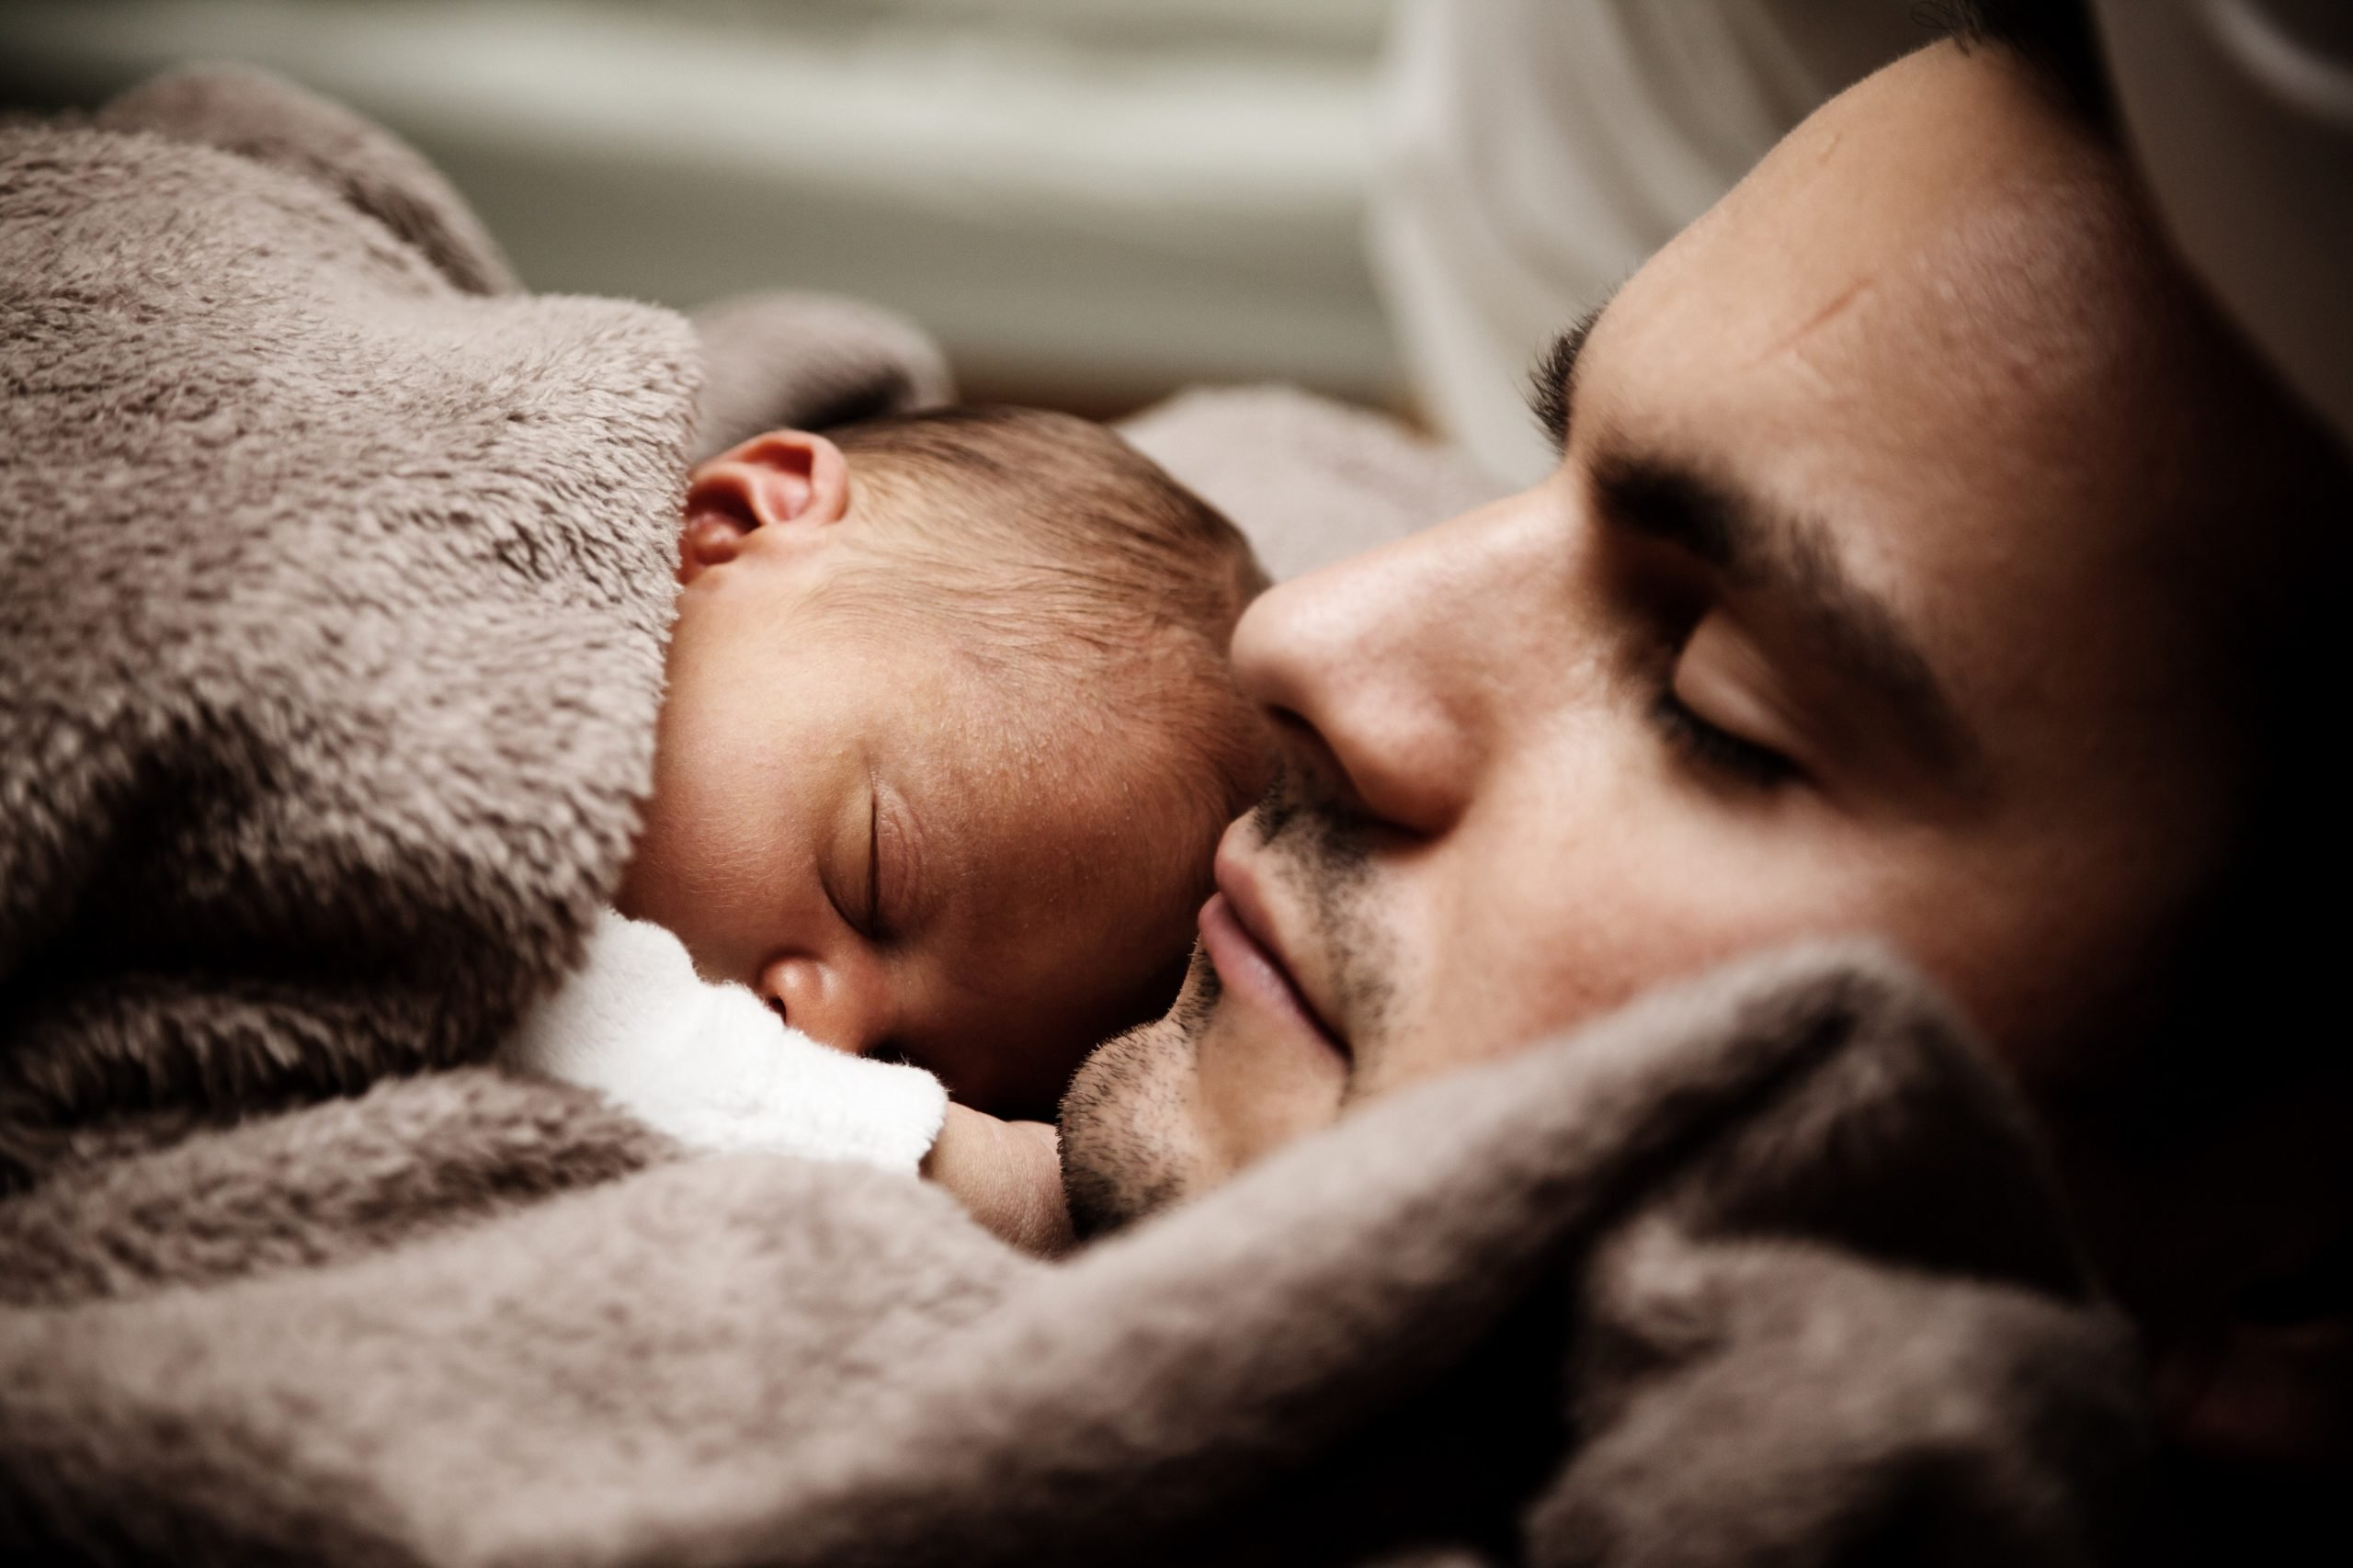 Overtired Baby: How to Get an Overtired Baby to Sleep